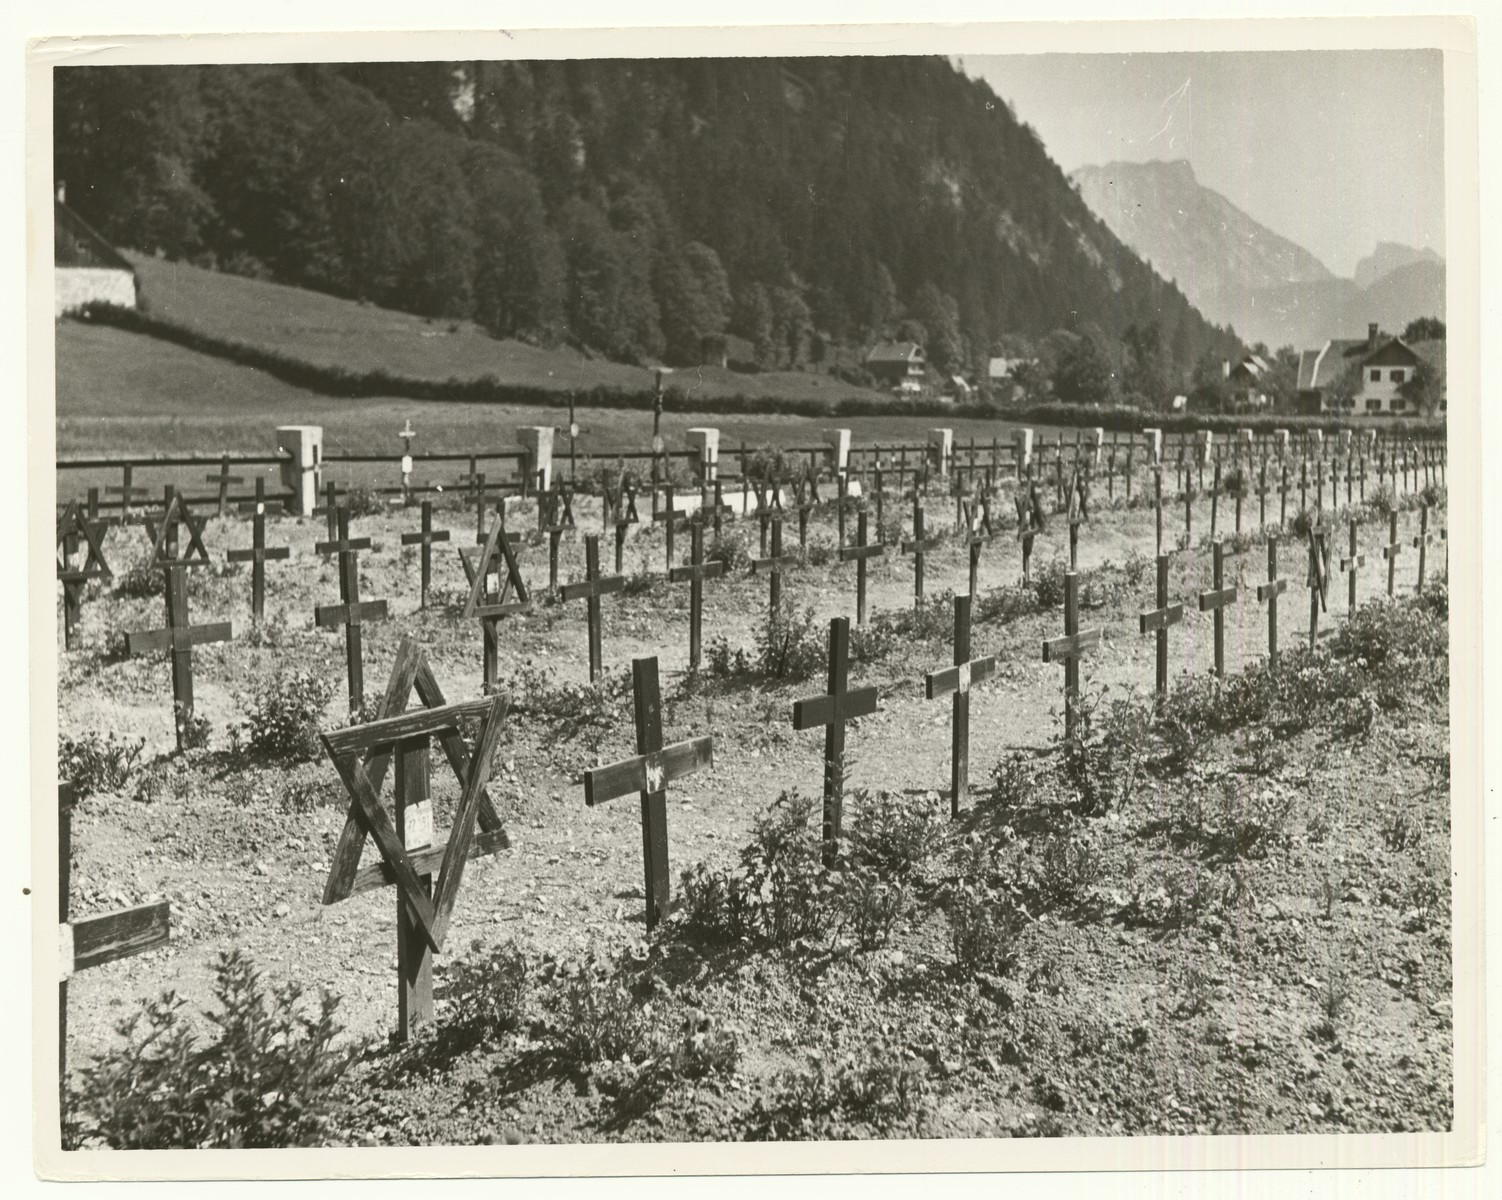 """Cemetery of the former concentration camp near Ebensee, Austria  Ebensee was used as a displaced persons camp after liberation, a cemetery for the victims of the concentration camp was laid out in 1946.  The handwritten caption on the back of the photograph reads: """"Cemetery of a former Concentration Camp near Ebensee, Austria."""""""